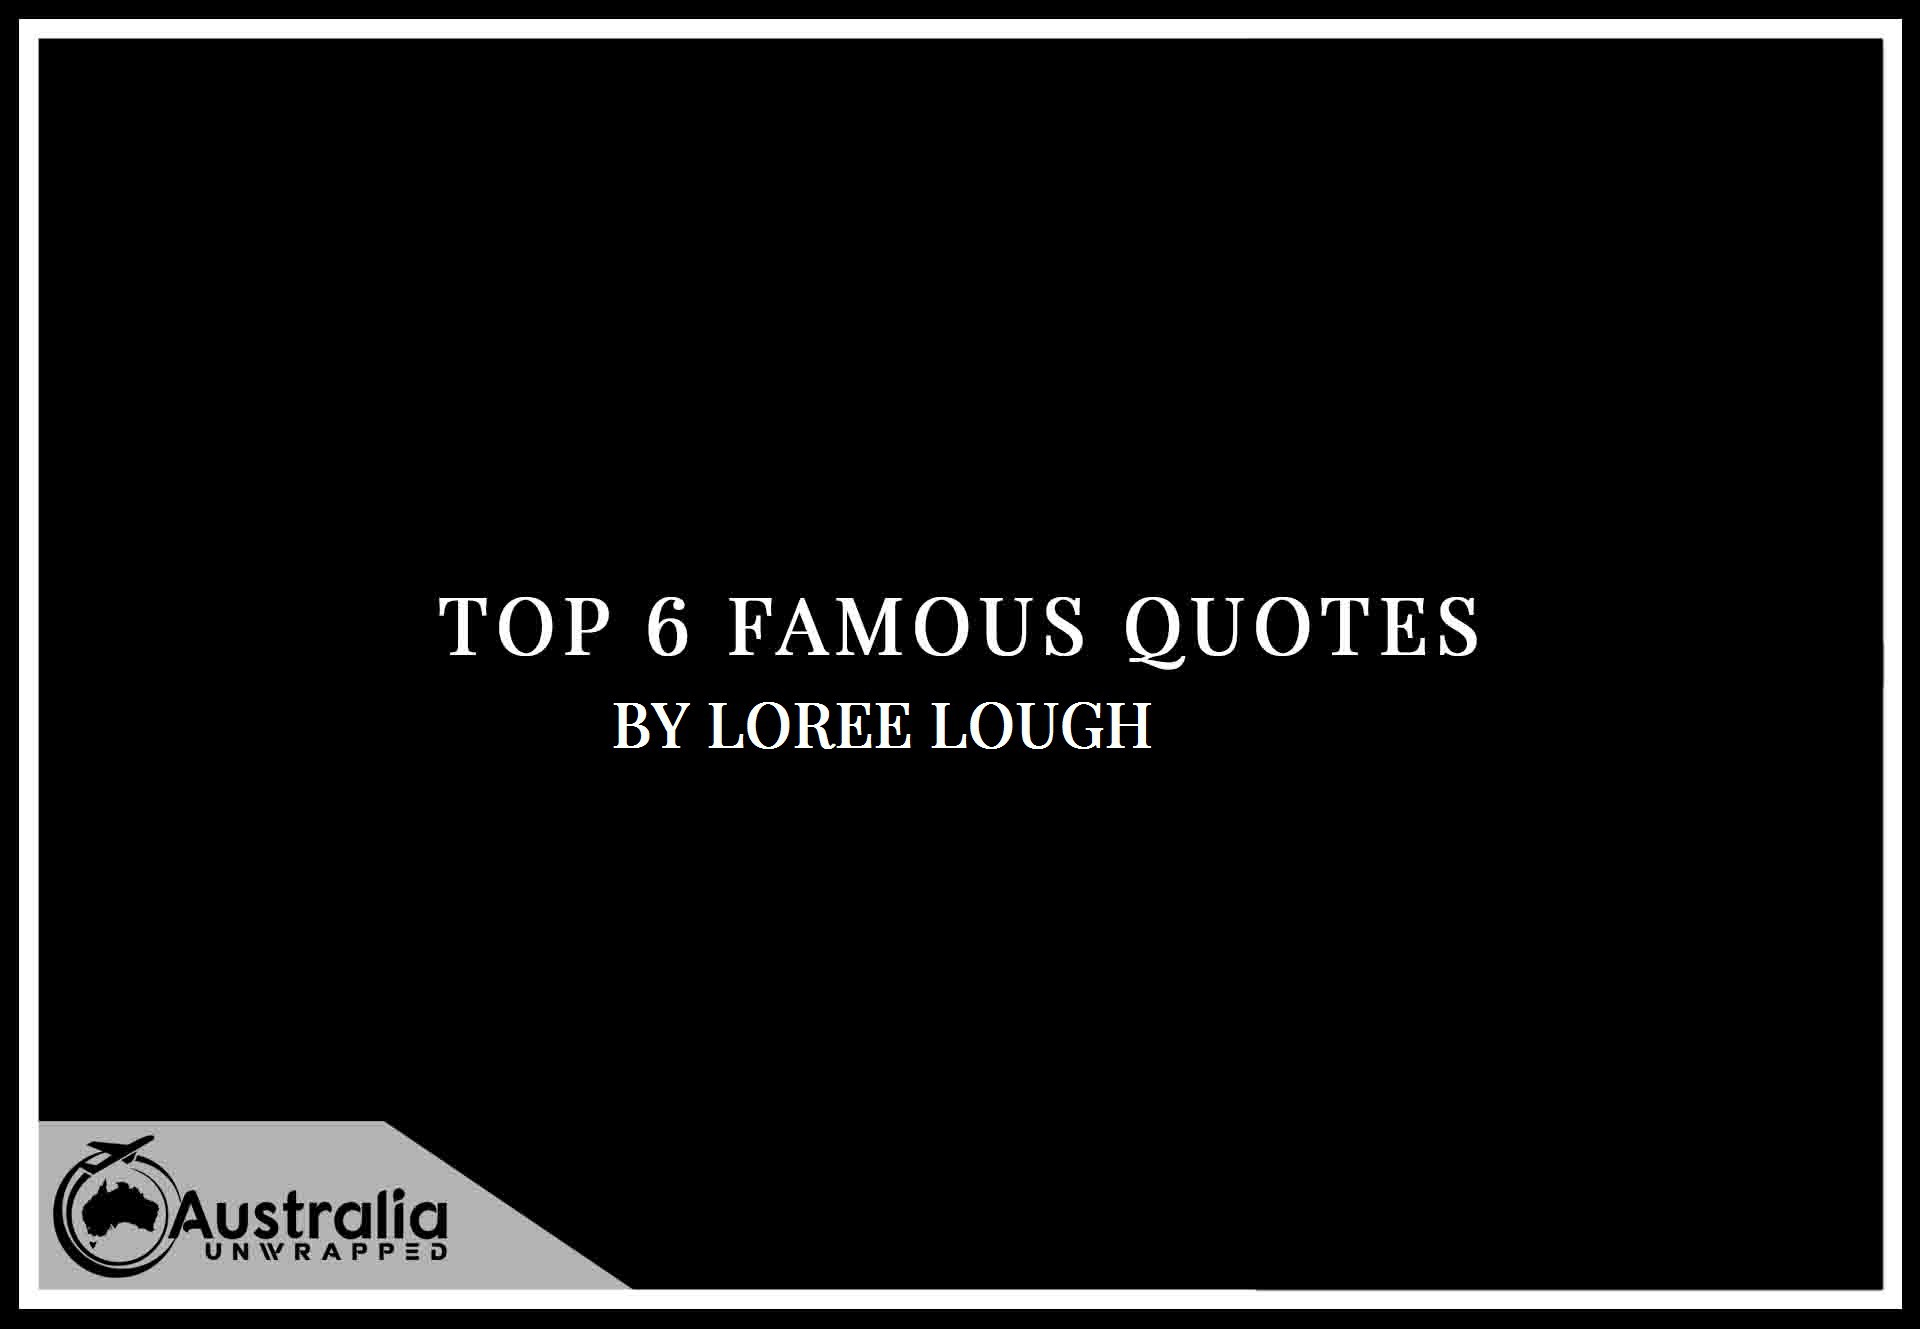 Loree Lough's Top 6 Popular and Famous Quotes